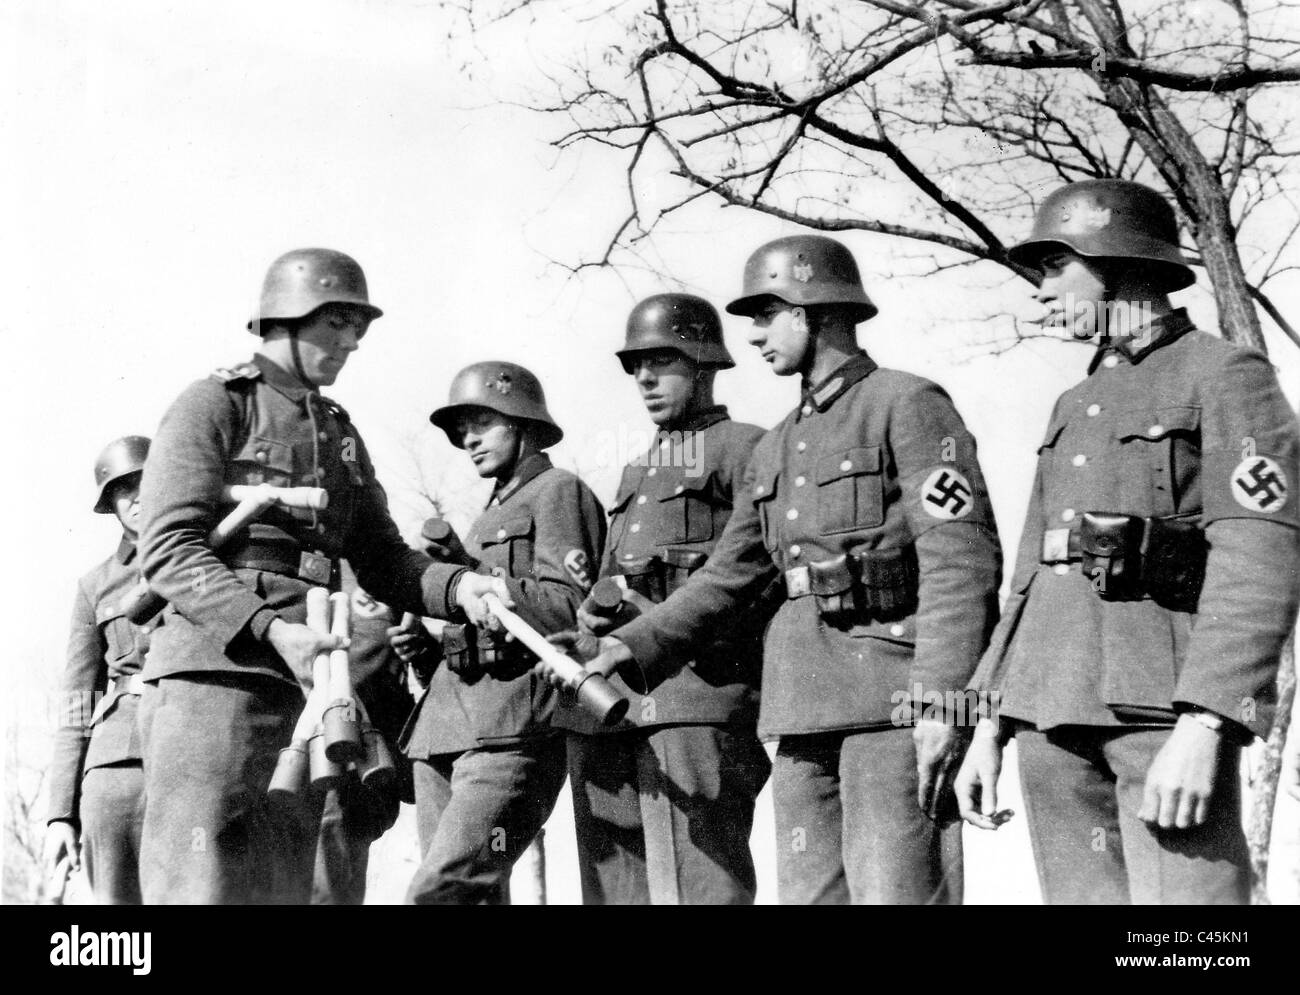 Training Reich Labor Service members how to use hand grenades, 1944 - Stock Image